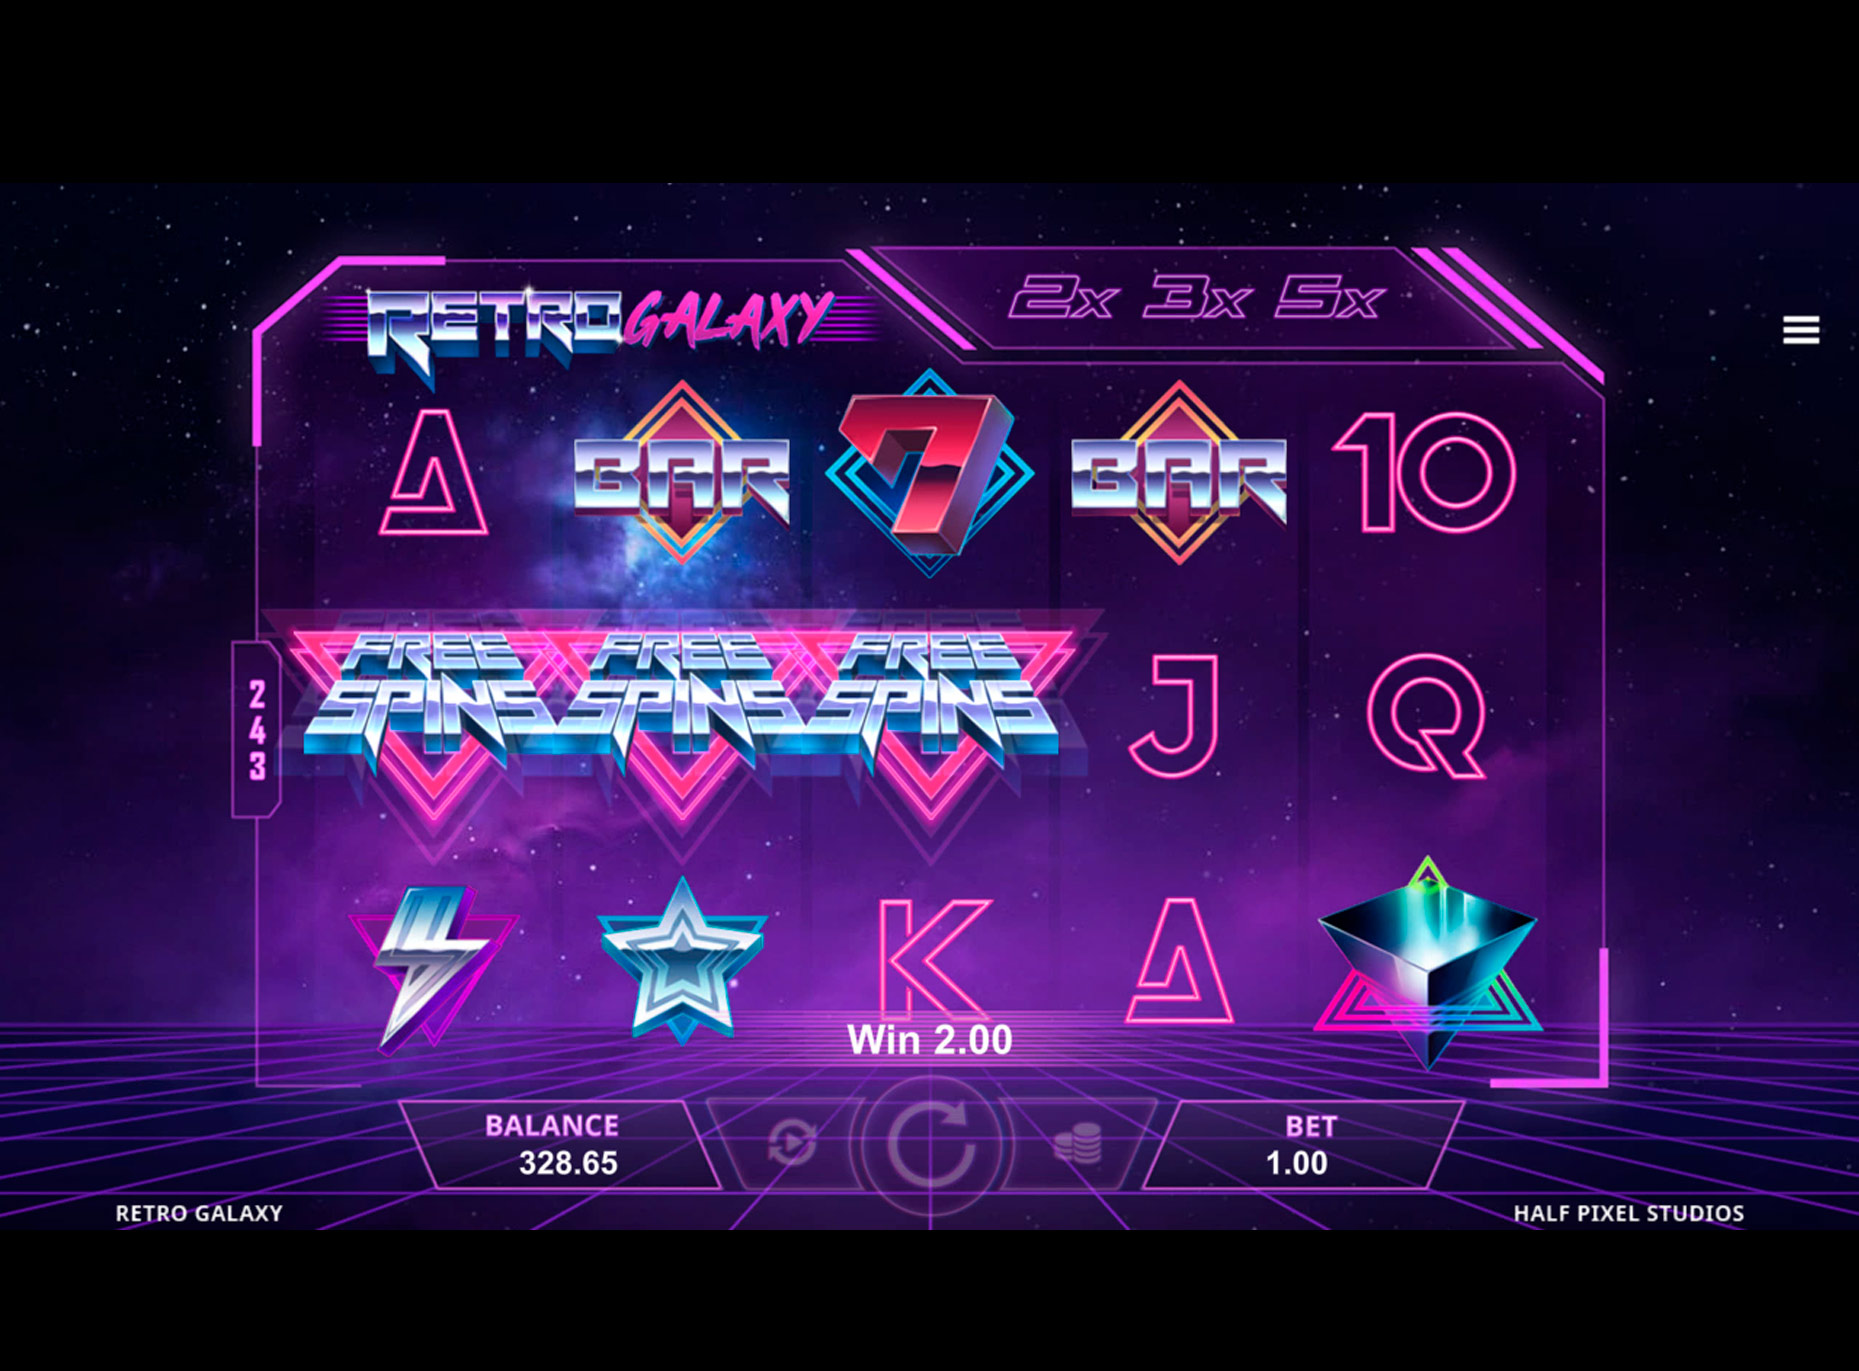 Slot Retro Galaxy